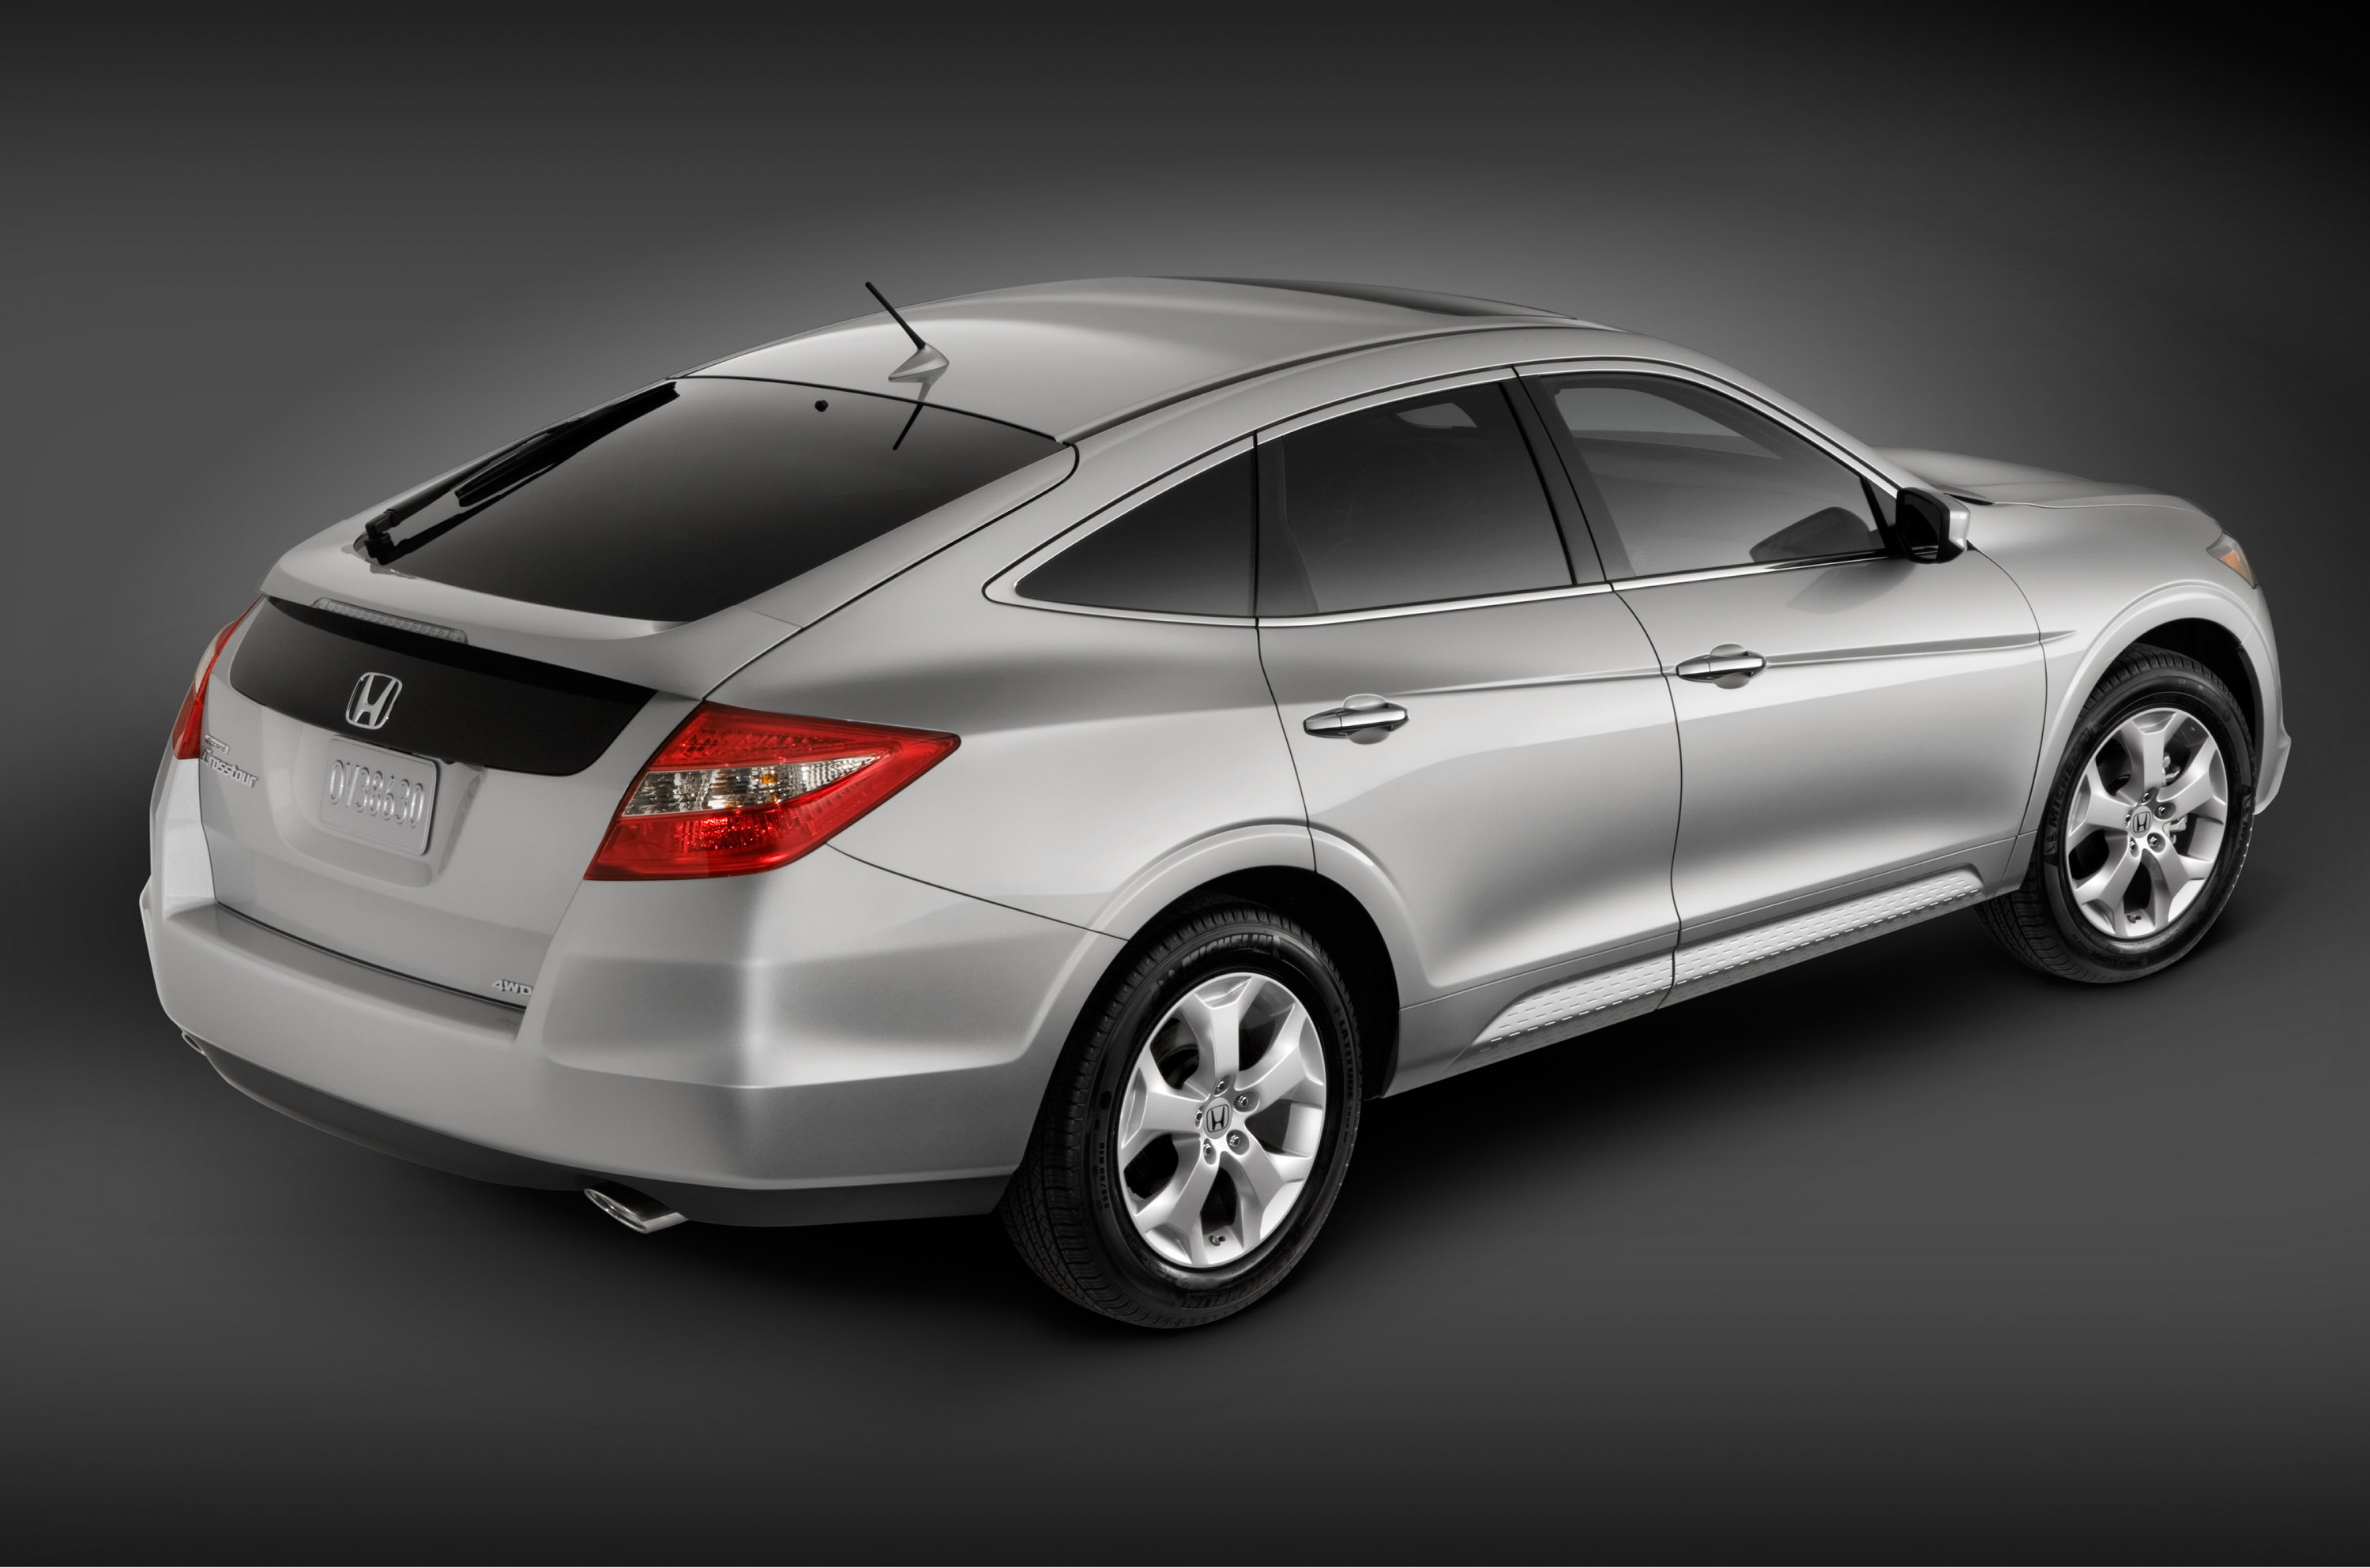 crosstour tyrone near vin huntingdon htm hollidaysburg accord for honda used sale pa altoona